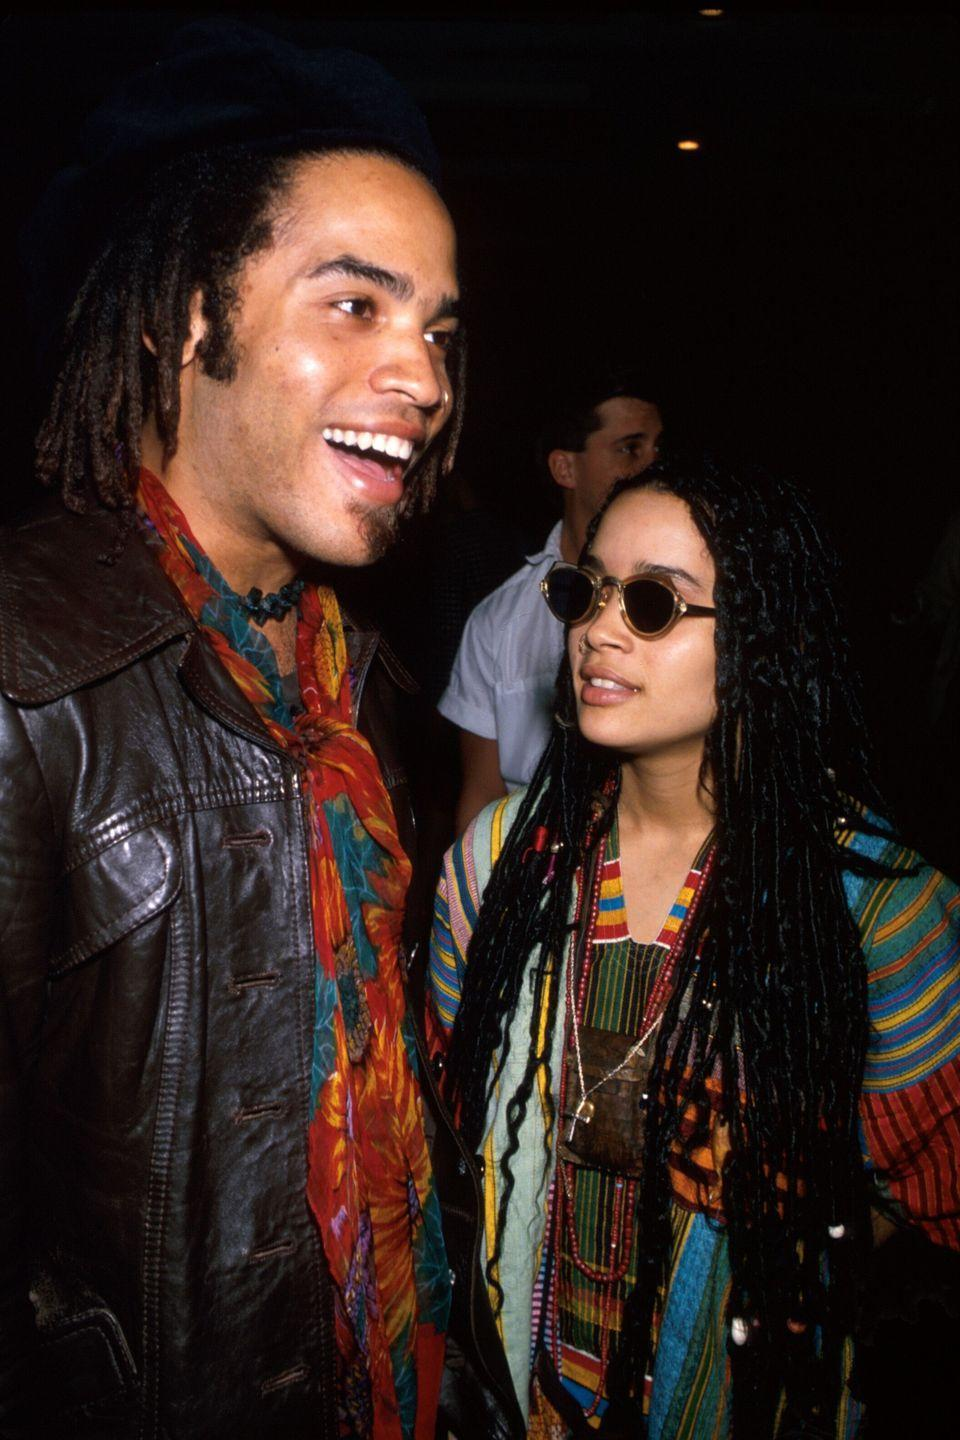 """<p>Lenny Kravitz and <em>The Cosby Show </em>actress Lisa Bonet <a href=""""http://www.huffingtonpost.com/2013/06/01/lenny-kravitz-lisa-bonet-divorce_n_3368400.html"""" rel=""""nofollow noopener"""" target=""""_blank"""" data-ylk=""""slk:eloped"""" class=""""link rapid-noclick-resp"""">eloped</a> in Las Vegas in 1987, on Bonet's 20th birthday. They had a daughter named Zoë in 1988 before they eventually divorced in 1993. <br></p>"""